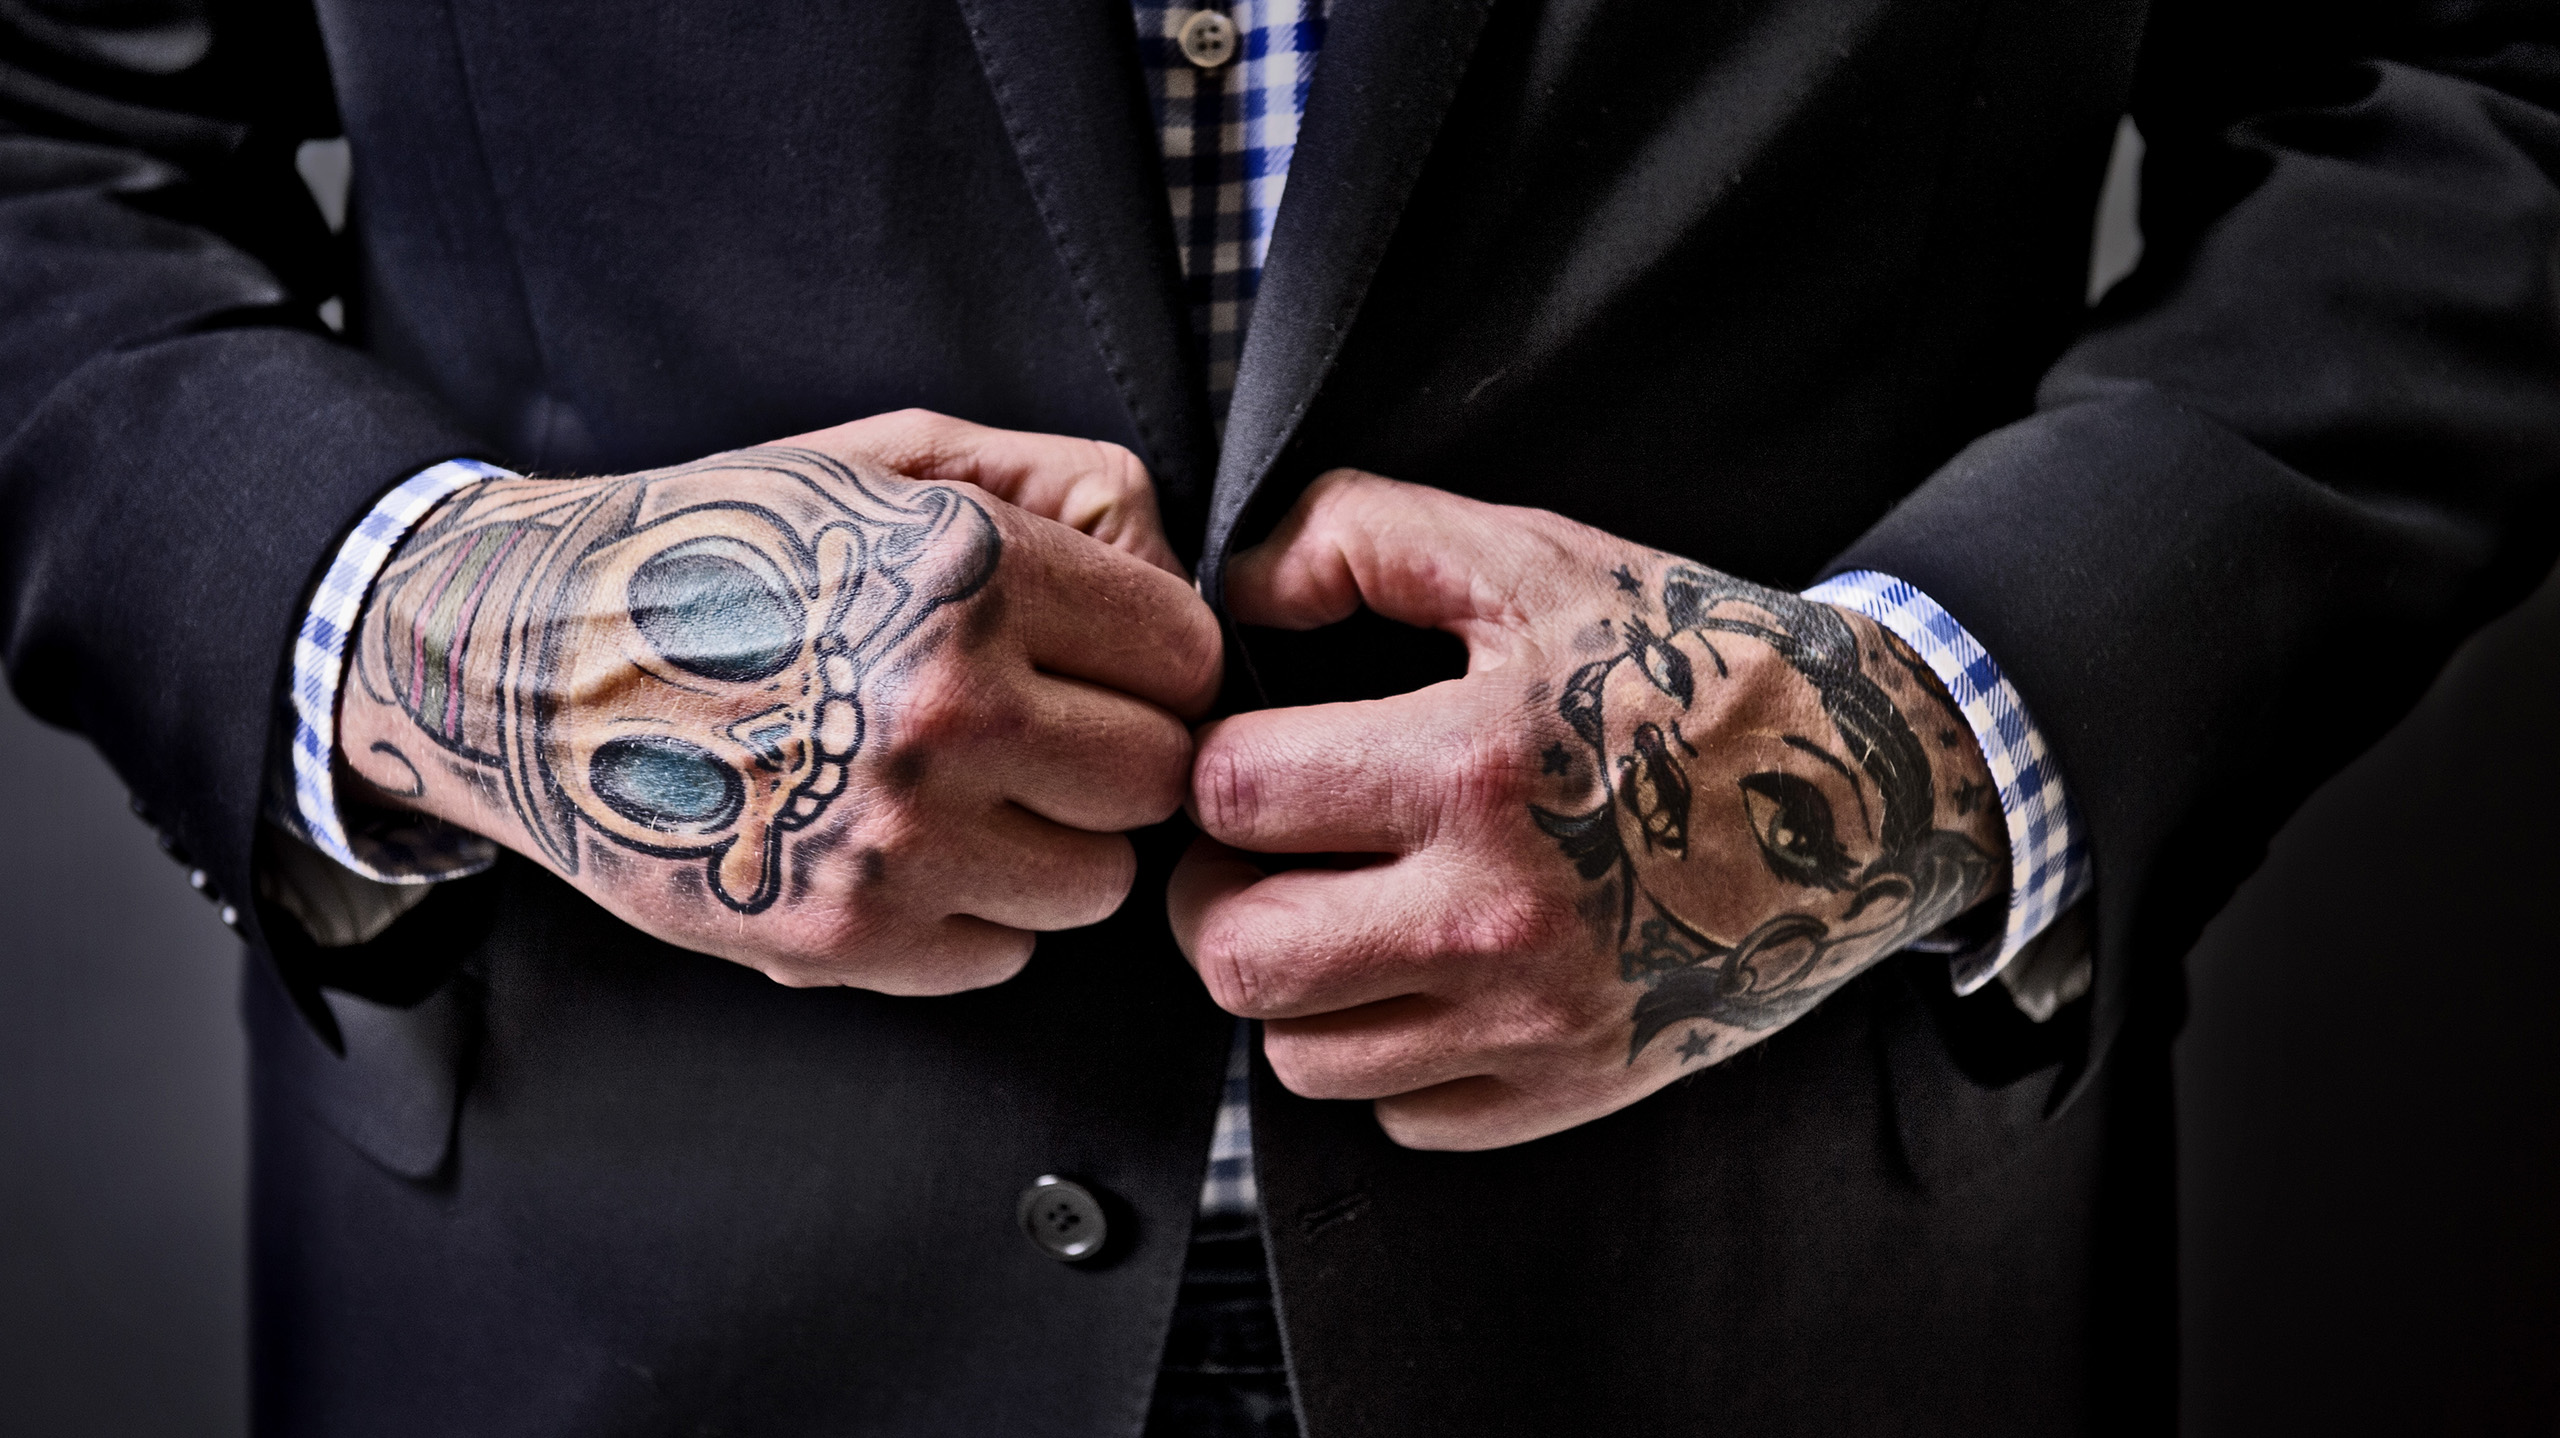 Tattoo Artist, Laser Tattoo Removal: Cleveland, Woodmere, OH